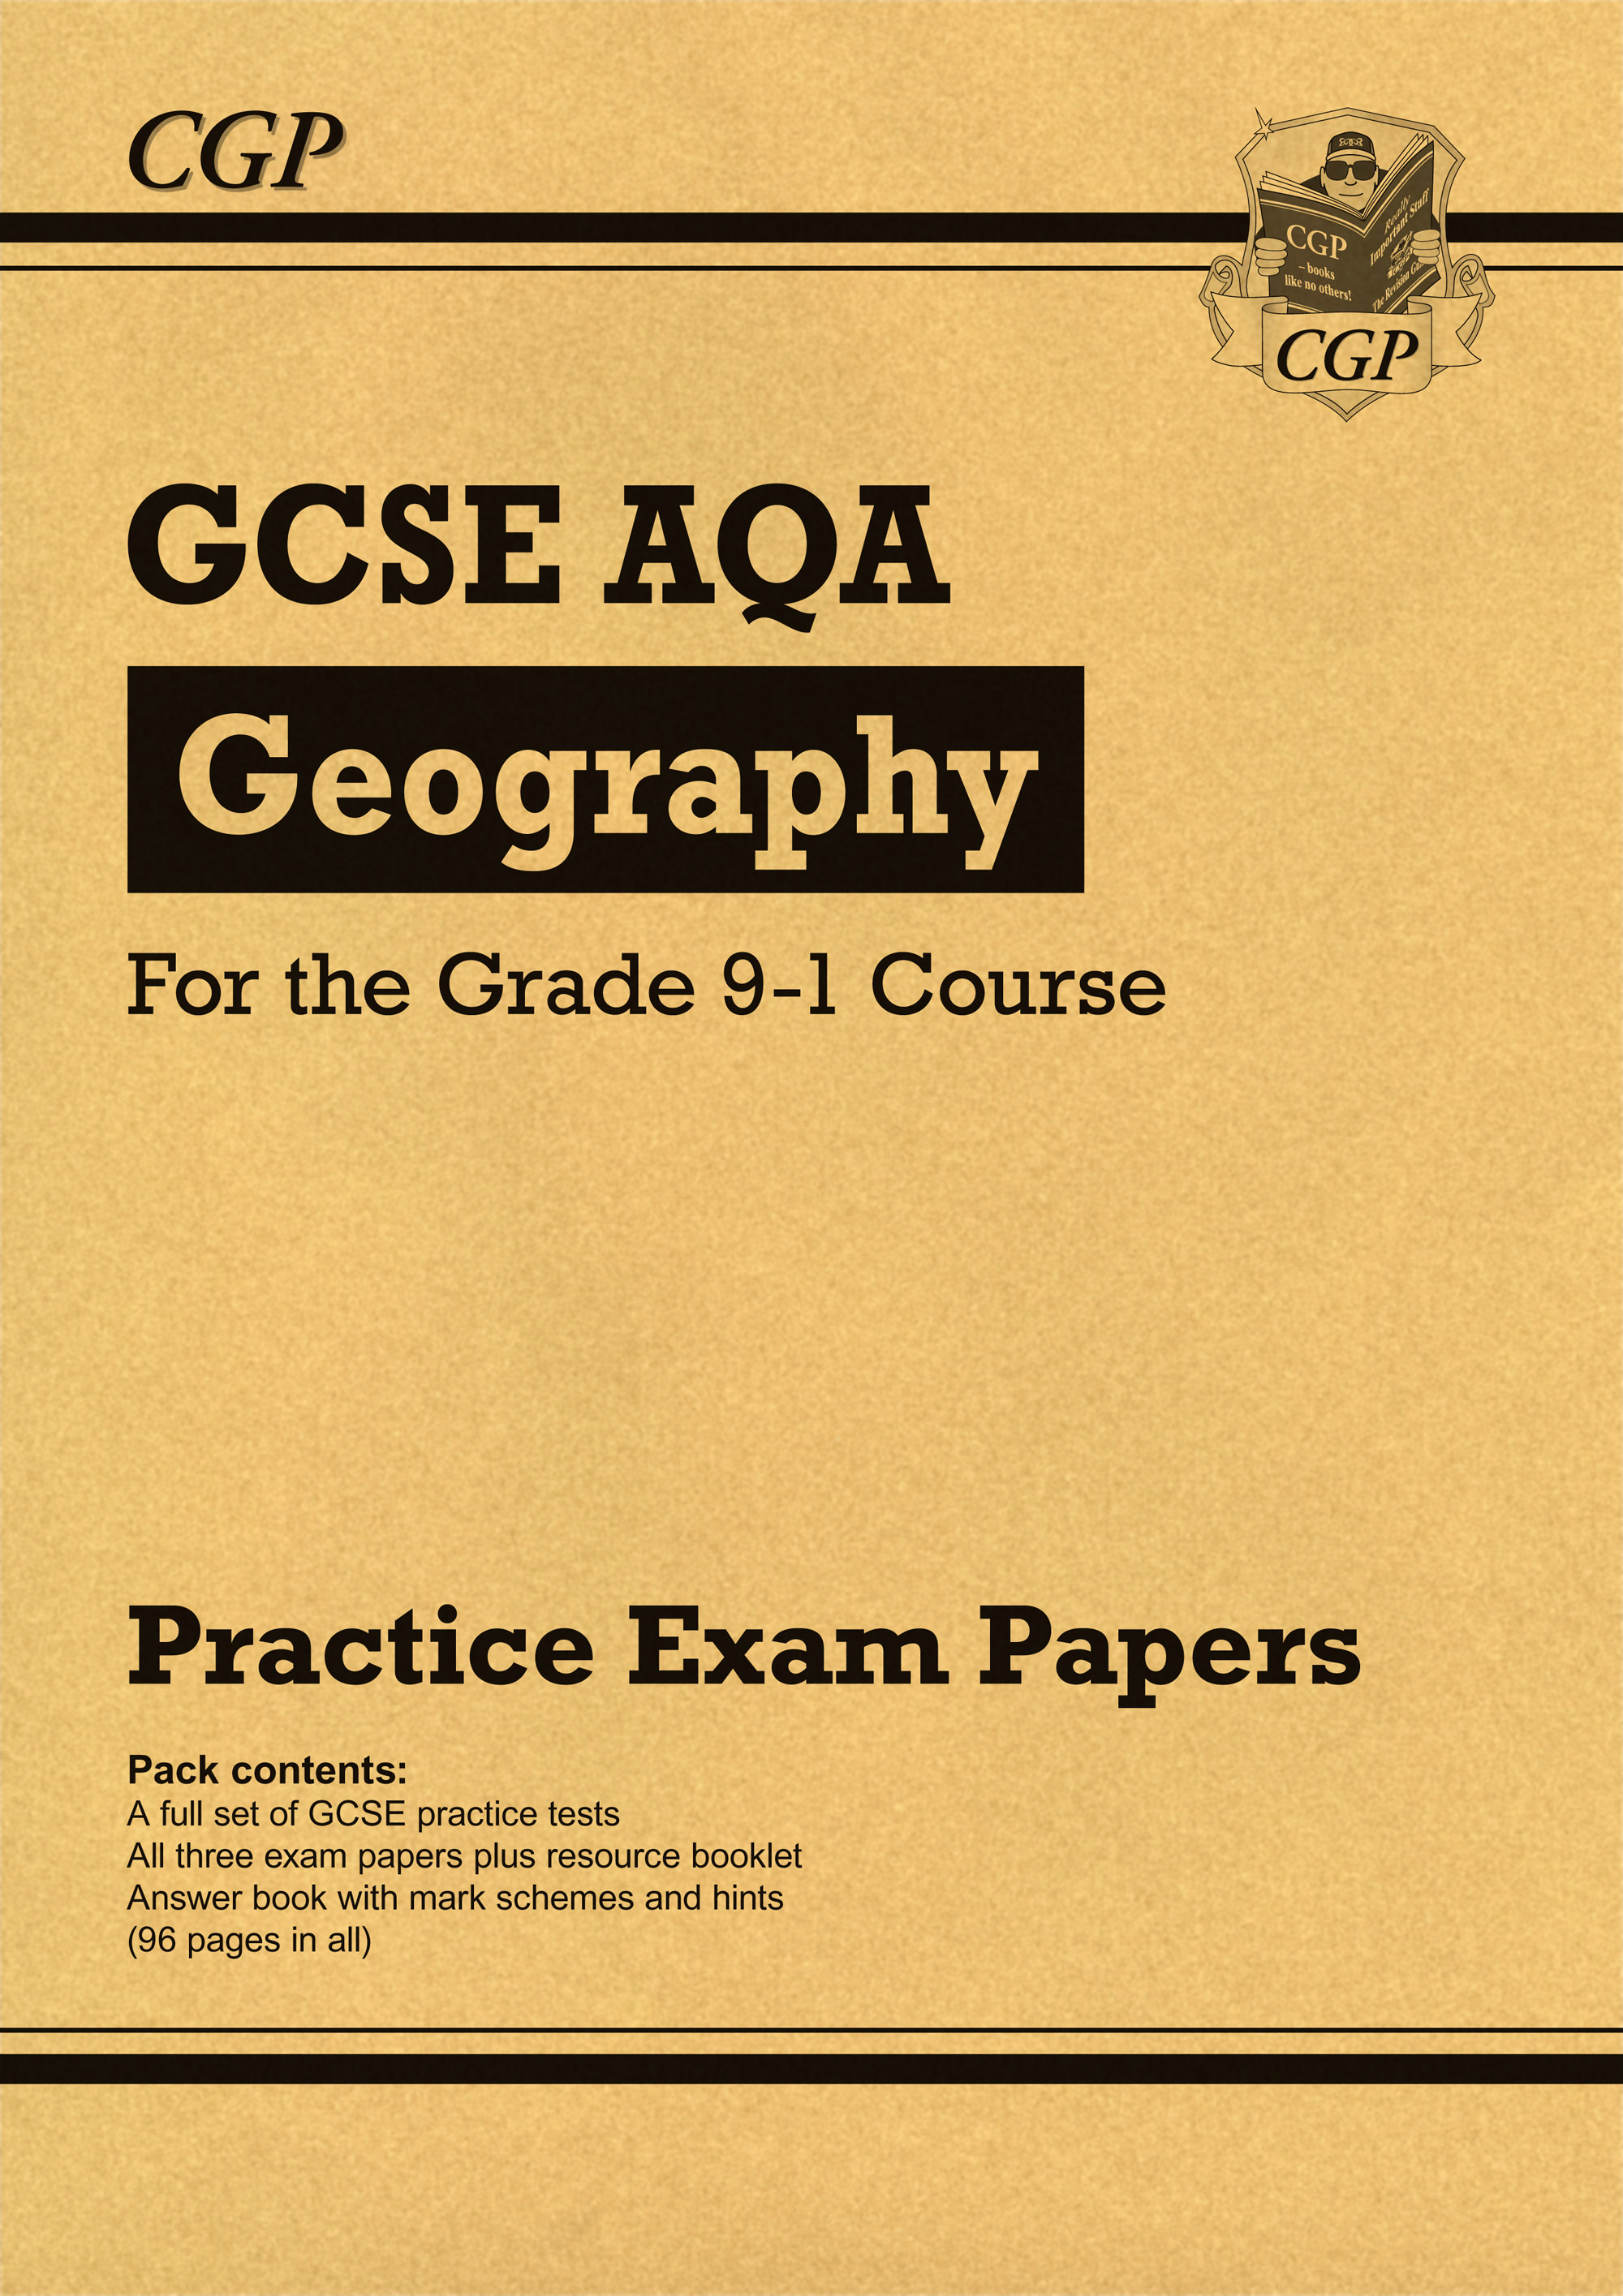 GAP41 - GCSE Geography AQA Practice Papers - for the Grade 9-1 Course